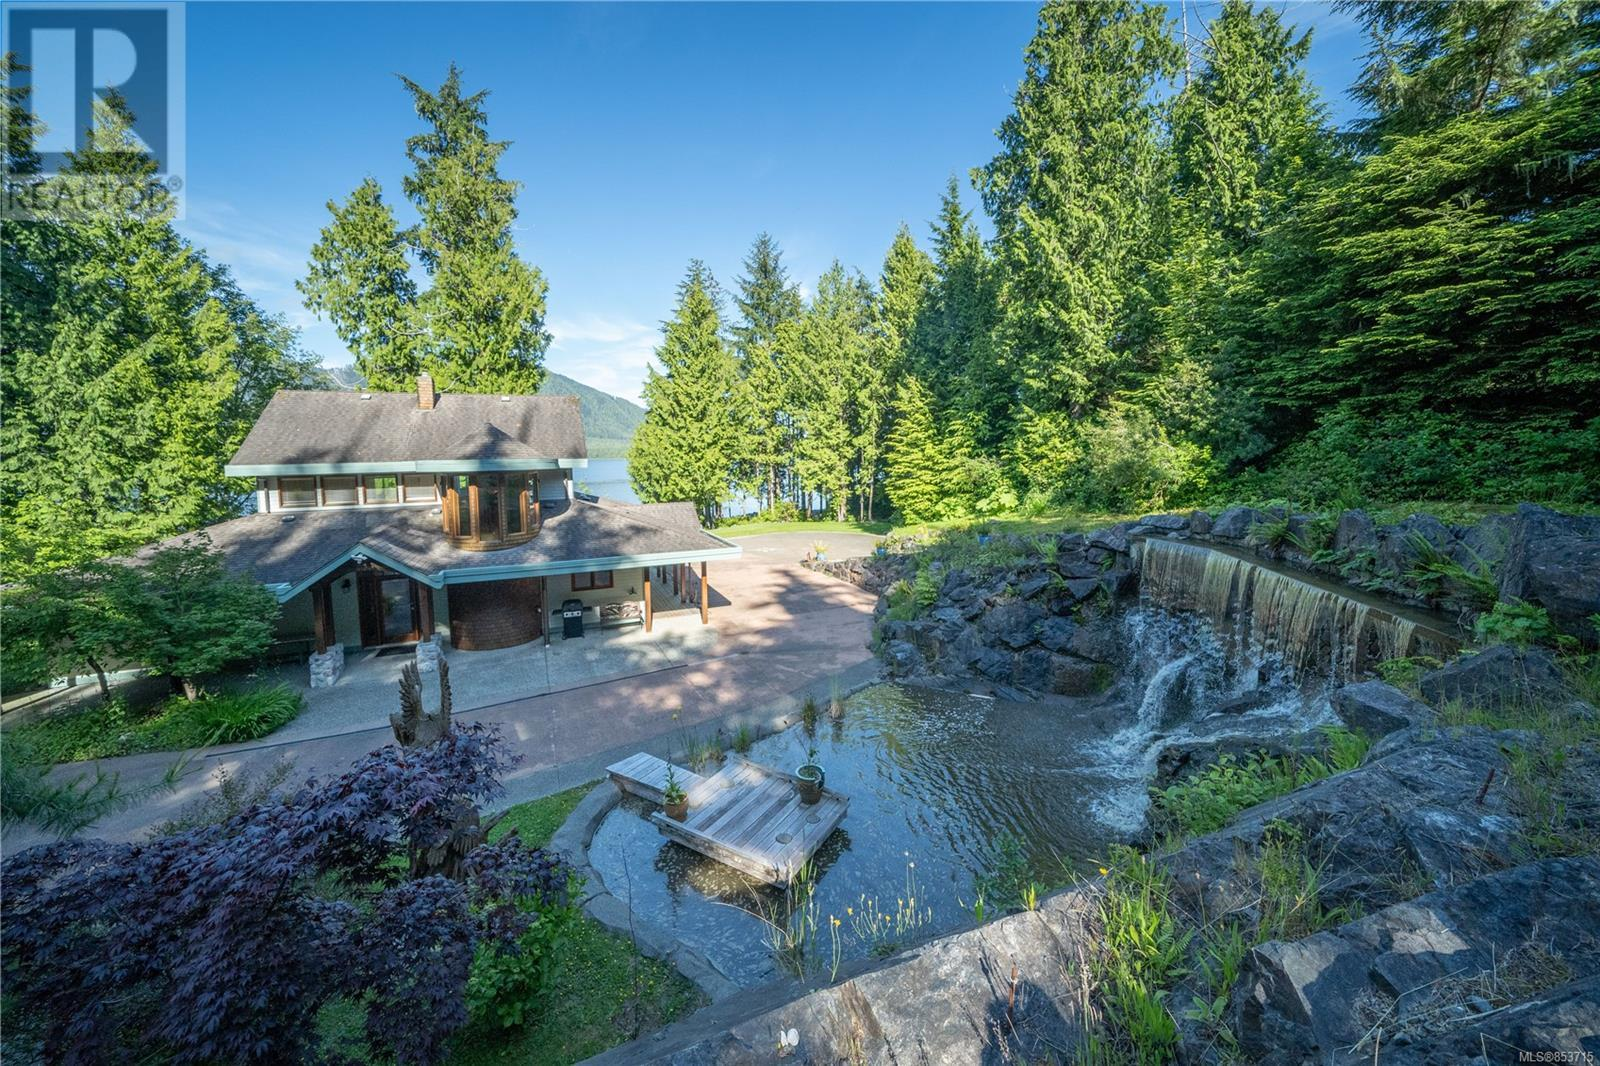 MLS® #853715 - Tofino House For sale Image #48